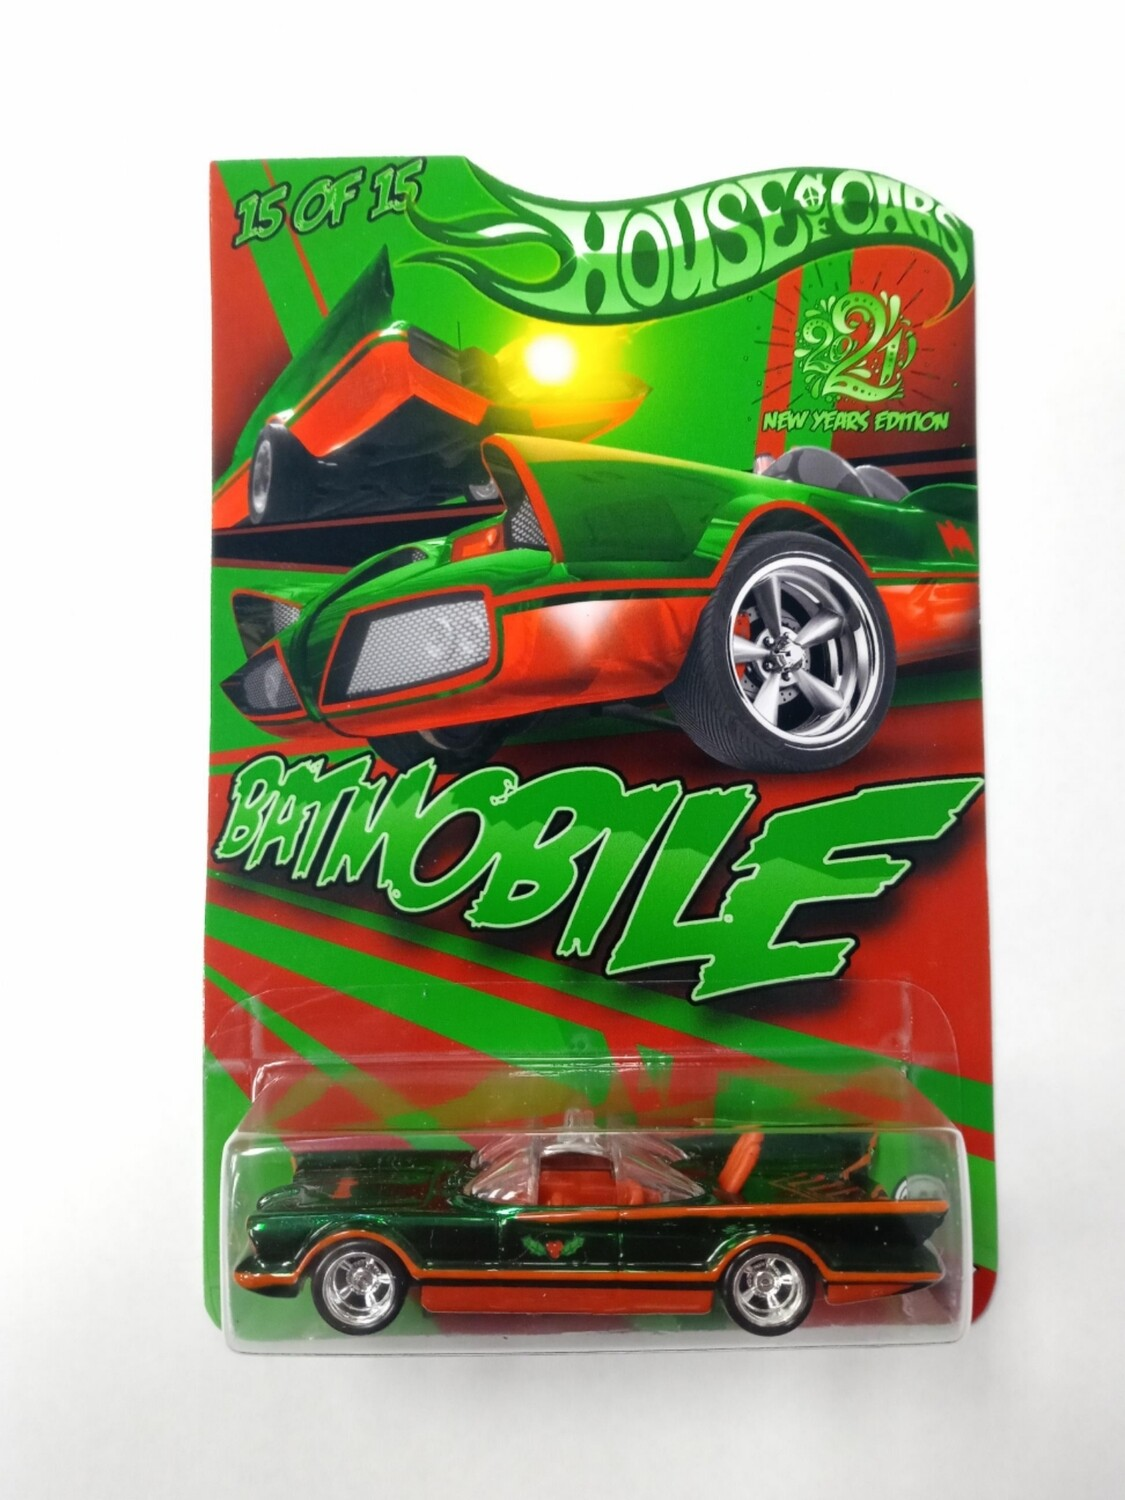 Happy New Year Batmobile 1 of 15 Spectraflame Green